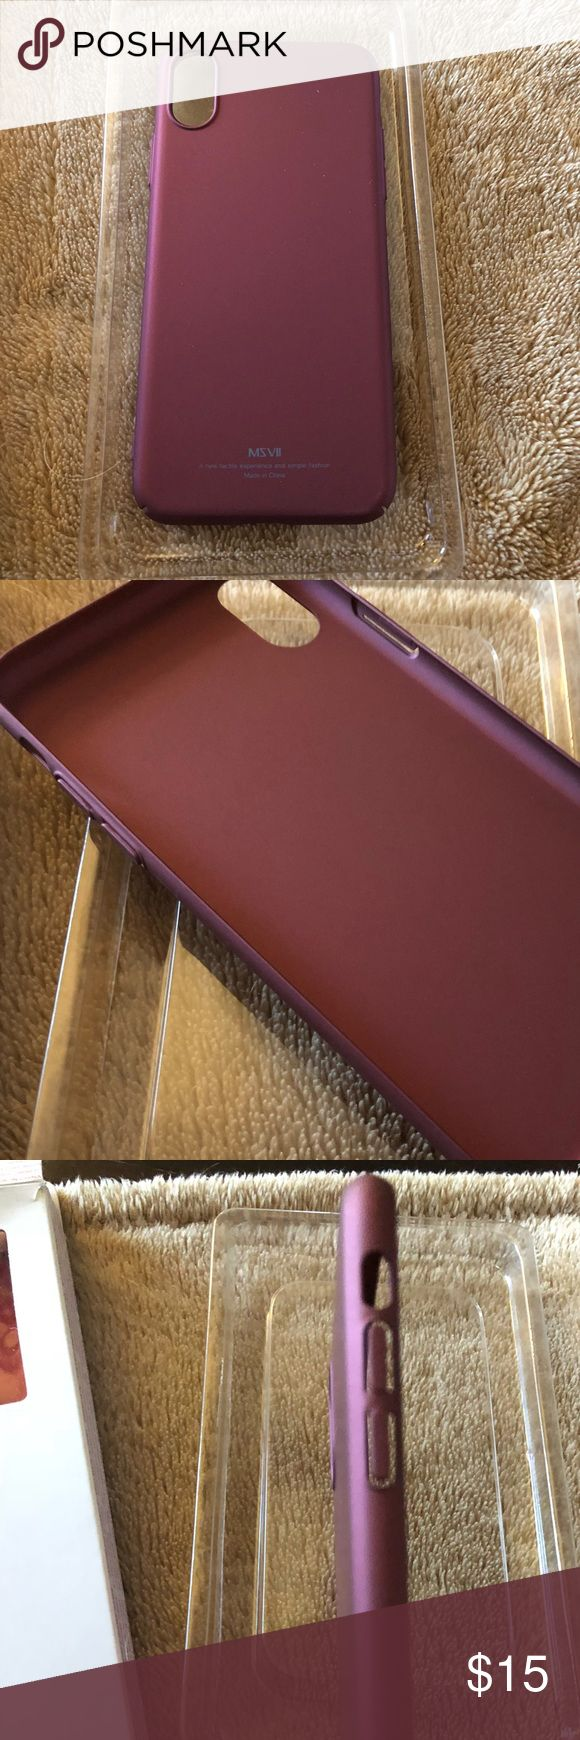 NIB iPhone X (10) Maroon Case Cover Yooki Scratch Resisitant UltraThin Slim Hard PC premium Cover Shell for 5.8 Apple IPhone X New In Box IPhone 10 (X) Maroon Case Cover. Accidentally bought 3 phone covers online by accident. Description Product Description:  Feature:  Designed to fit perfectly with the iPhone X / iPhone 10  Precise cut-outs for speakers, charging ports, camera, audio ports and buttons  High quality material fully protects your phone from scratching dropping and dust…